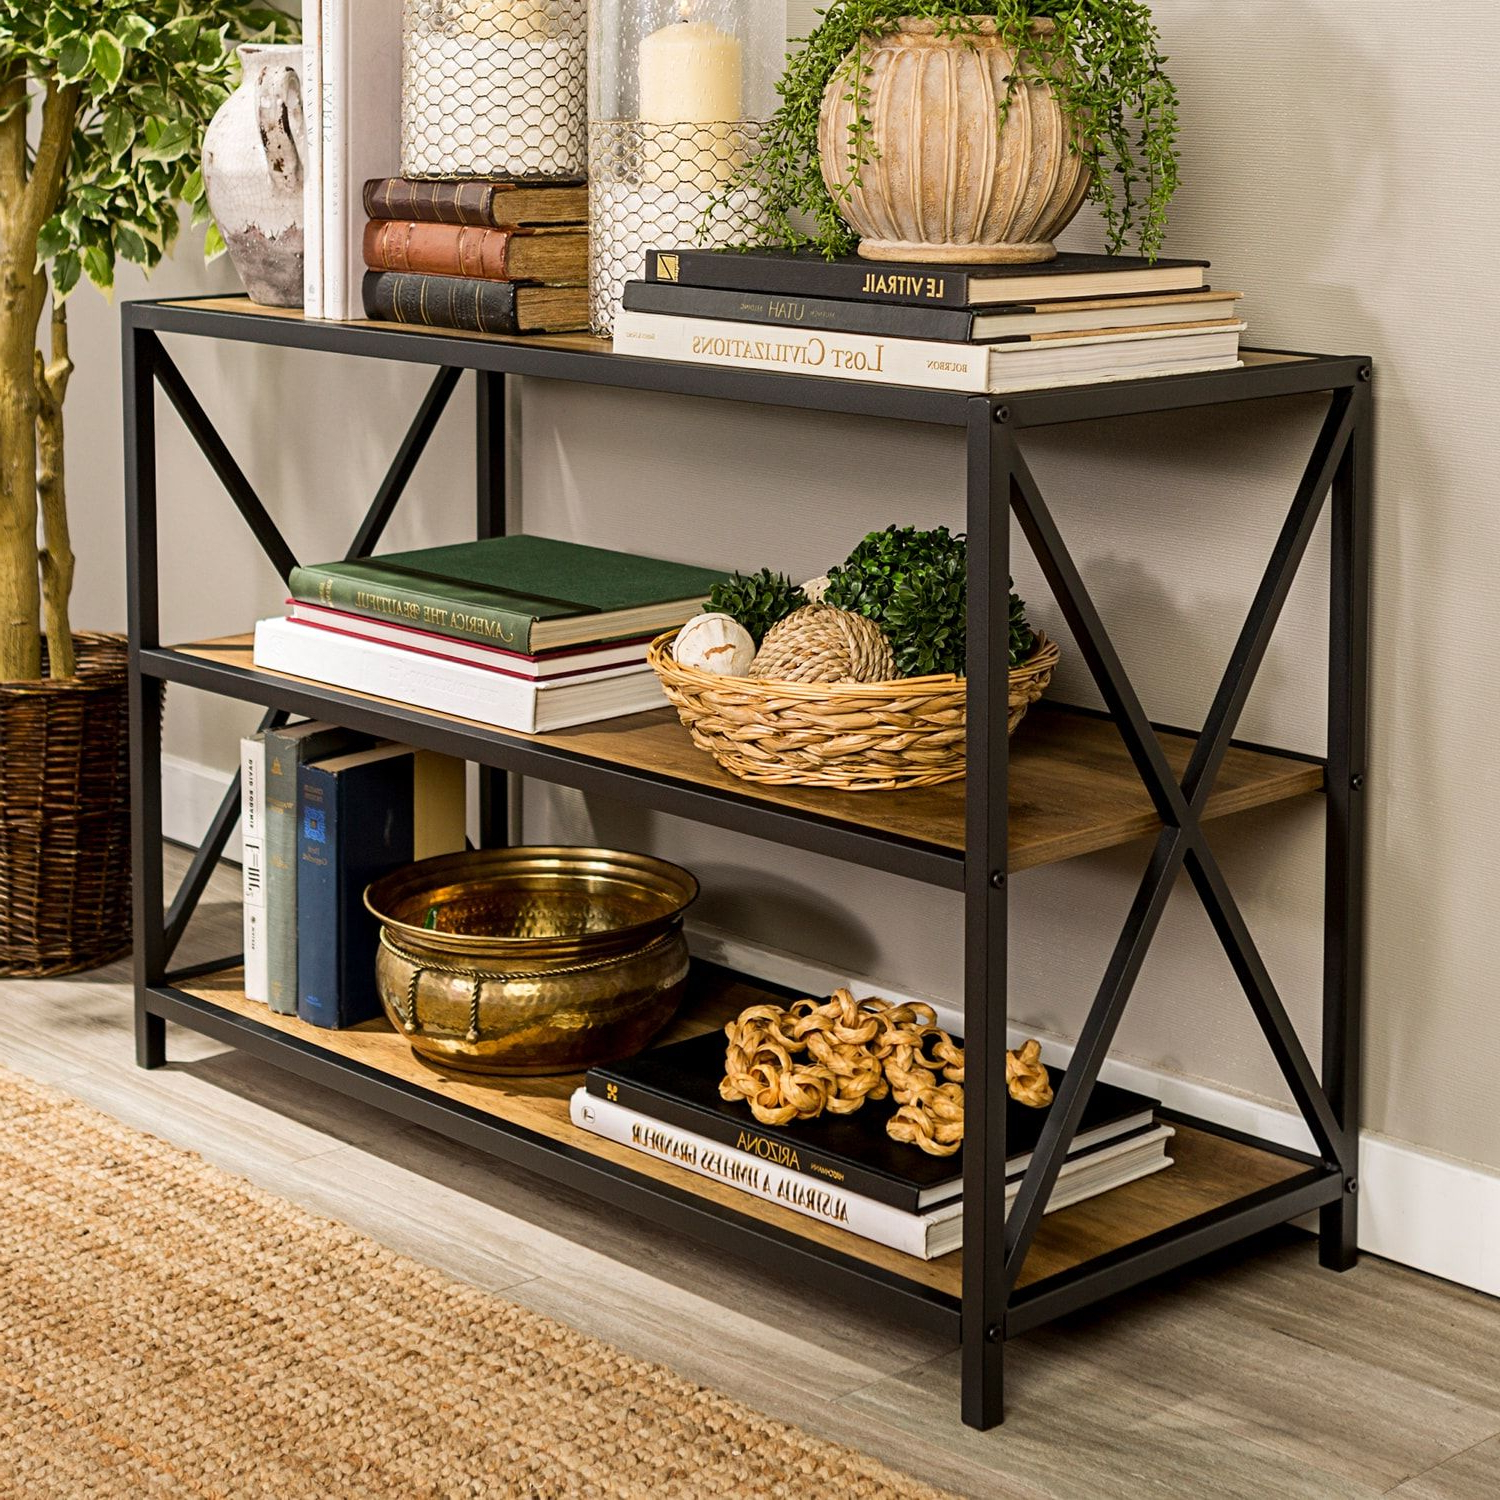 "Best And Newest Adair Etagere Bookcases In Rustic Oak 40"" X Frame Metal & Wood Bookshelf (View 15 of 20)"